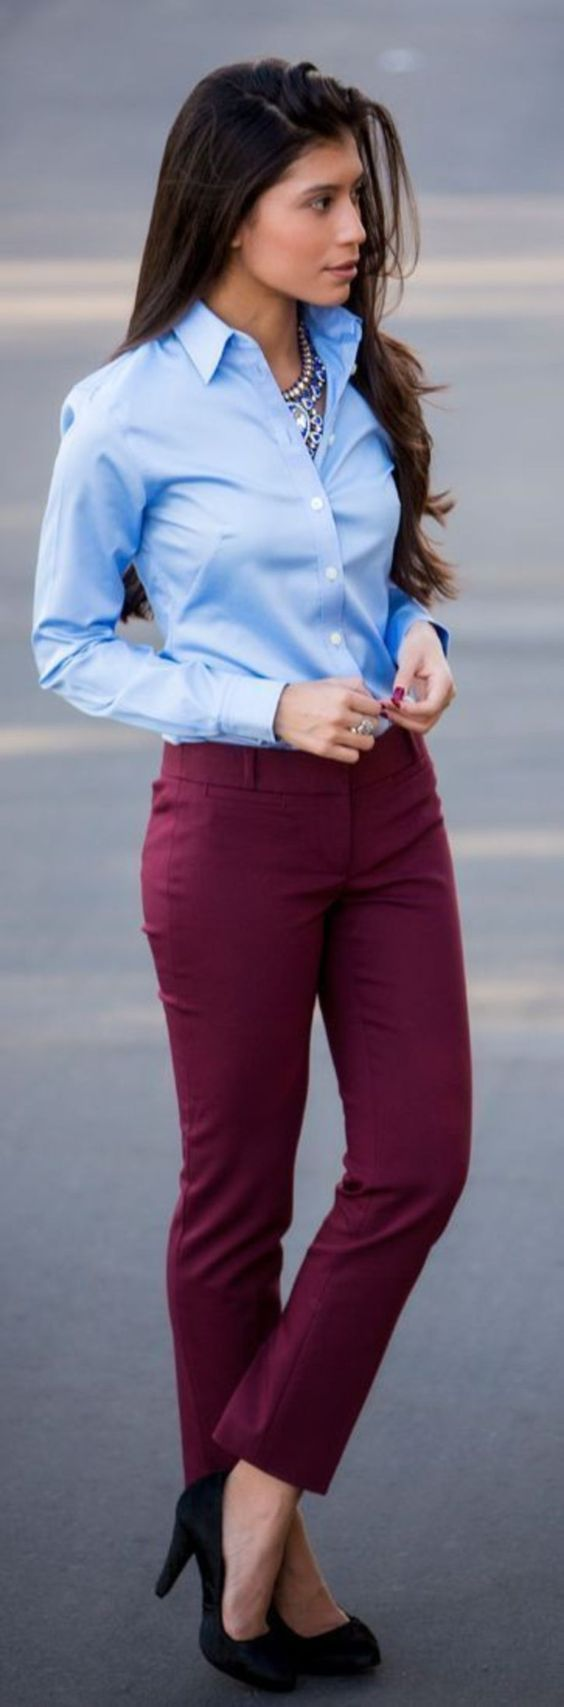 Work Outfits: light blue long sleeve blouse, wine skinny pants, black heels, necklace #outfitideas #women #pretty #look